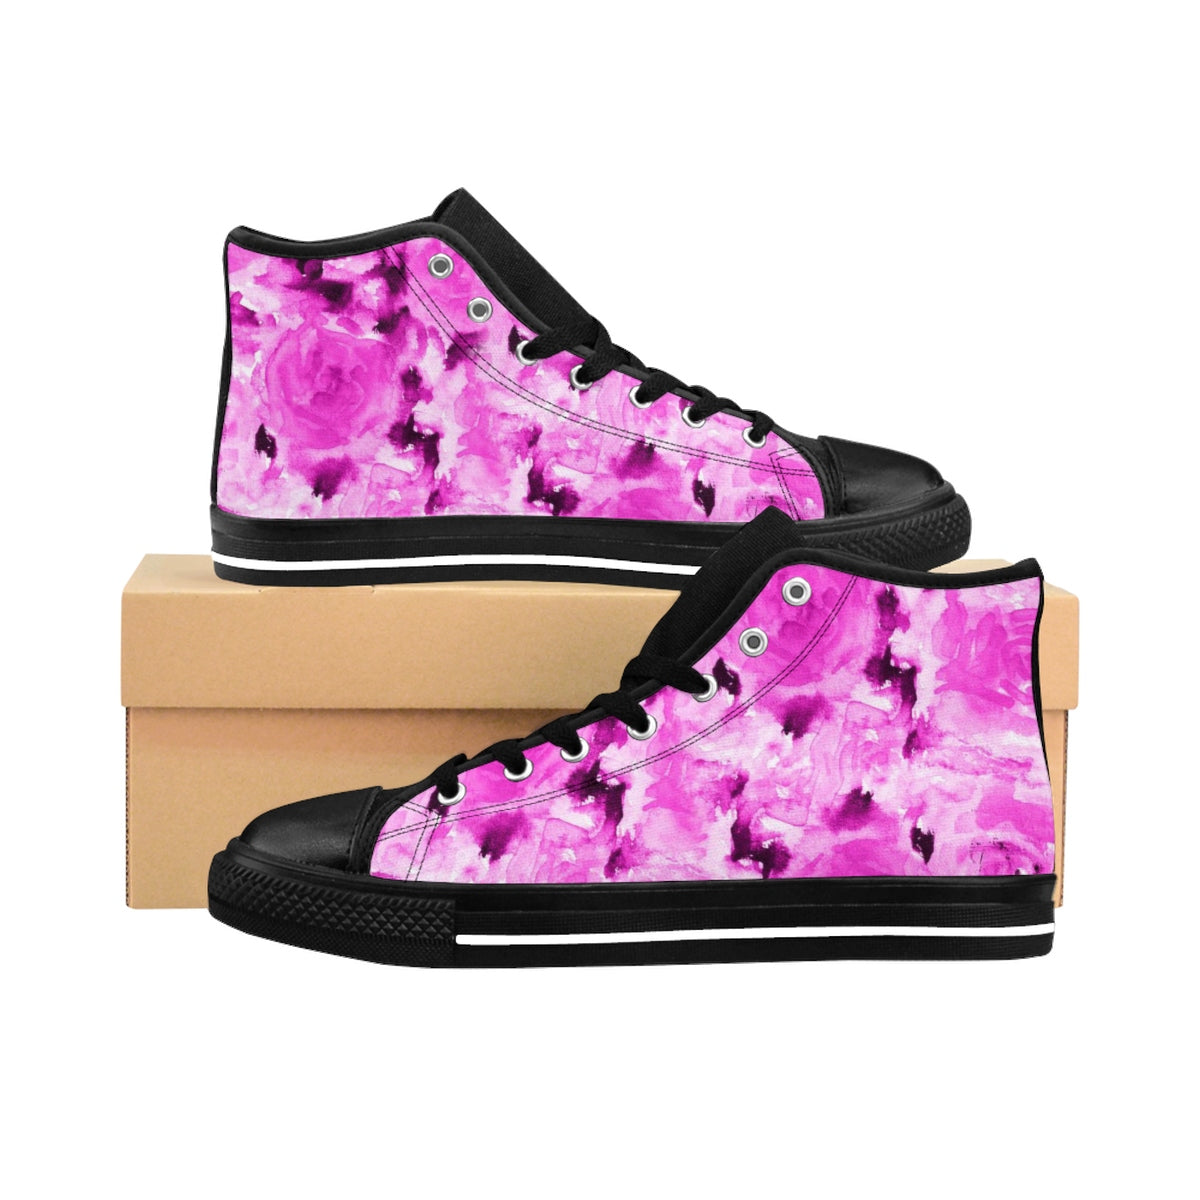 Japanese Princess Rose Floral Print Designer Women's High Top Sneakers Shoes (US 6-12)-Women's High Top Sneakers-US 9-Heidi Kimura Art LLC Pink Rose Women's Sneakers, Japanese Princess Rose Floral Print Designer Women's High Top Sneakers Shoes (US Size: 6-12)